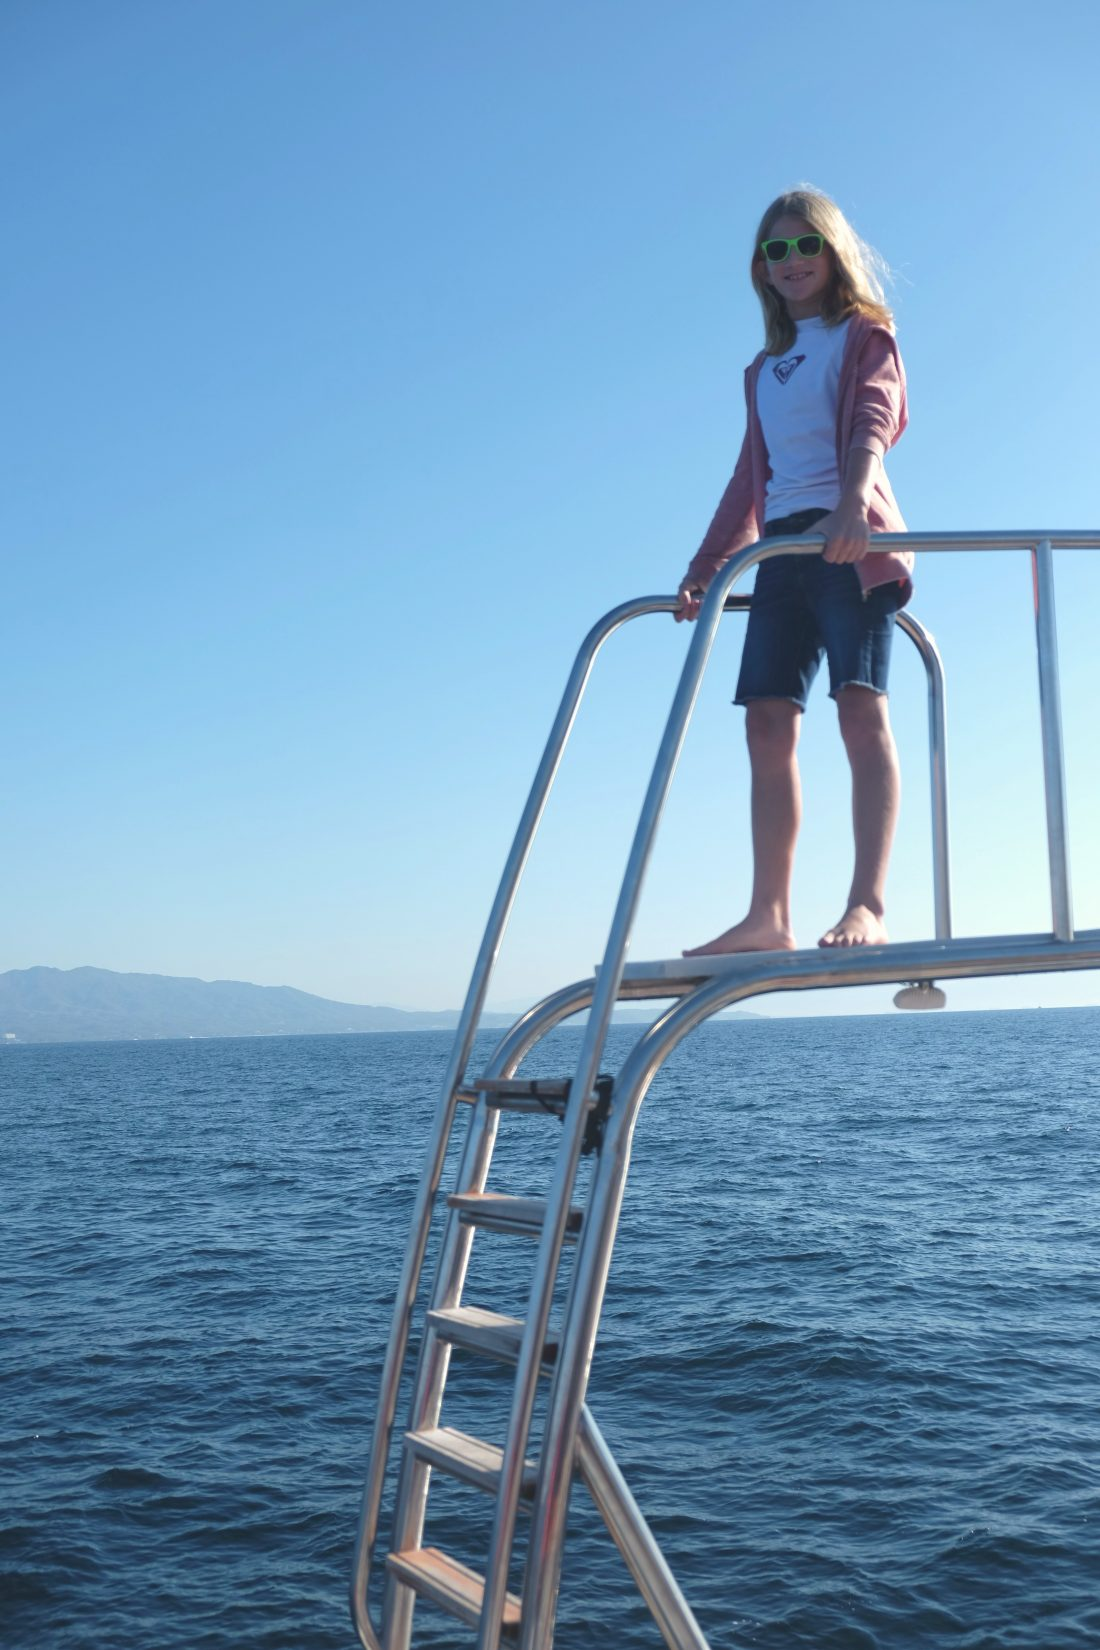 She found the perfect vantage point for spotting whales. Allycat. Punta de Mita